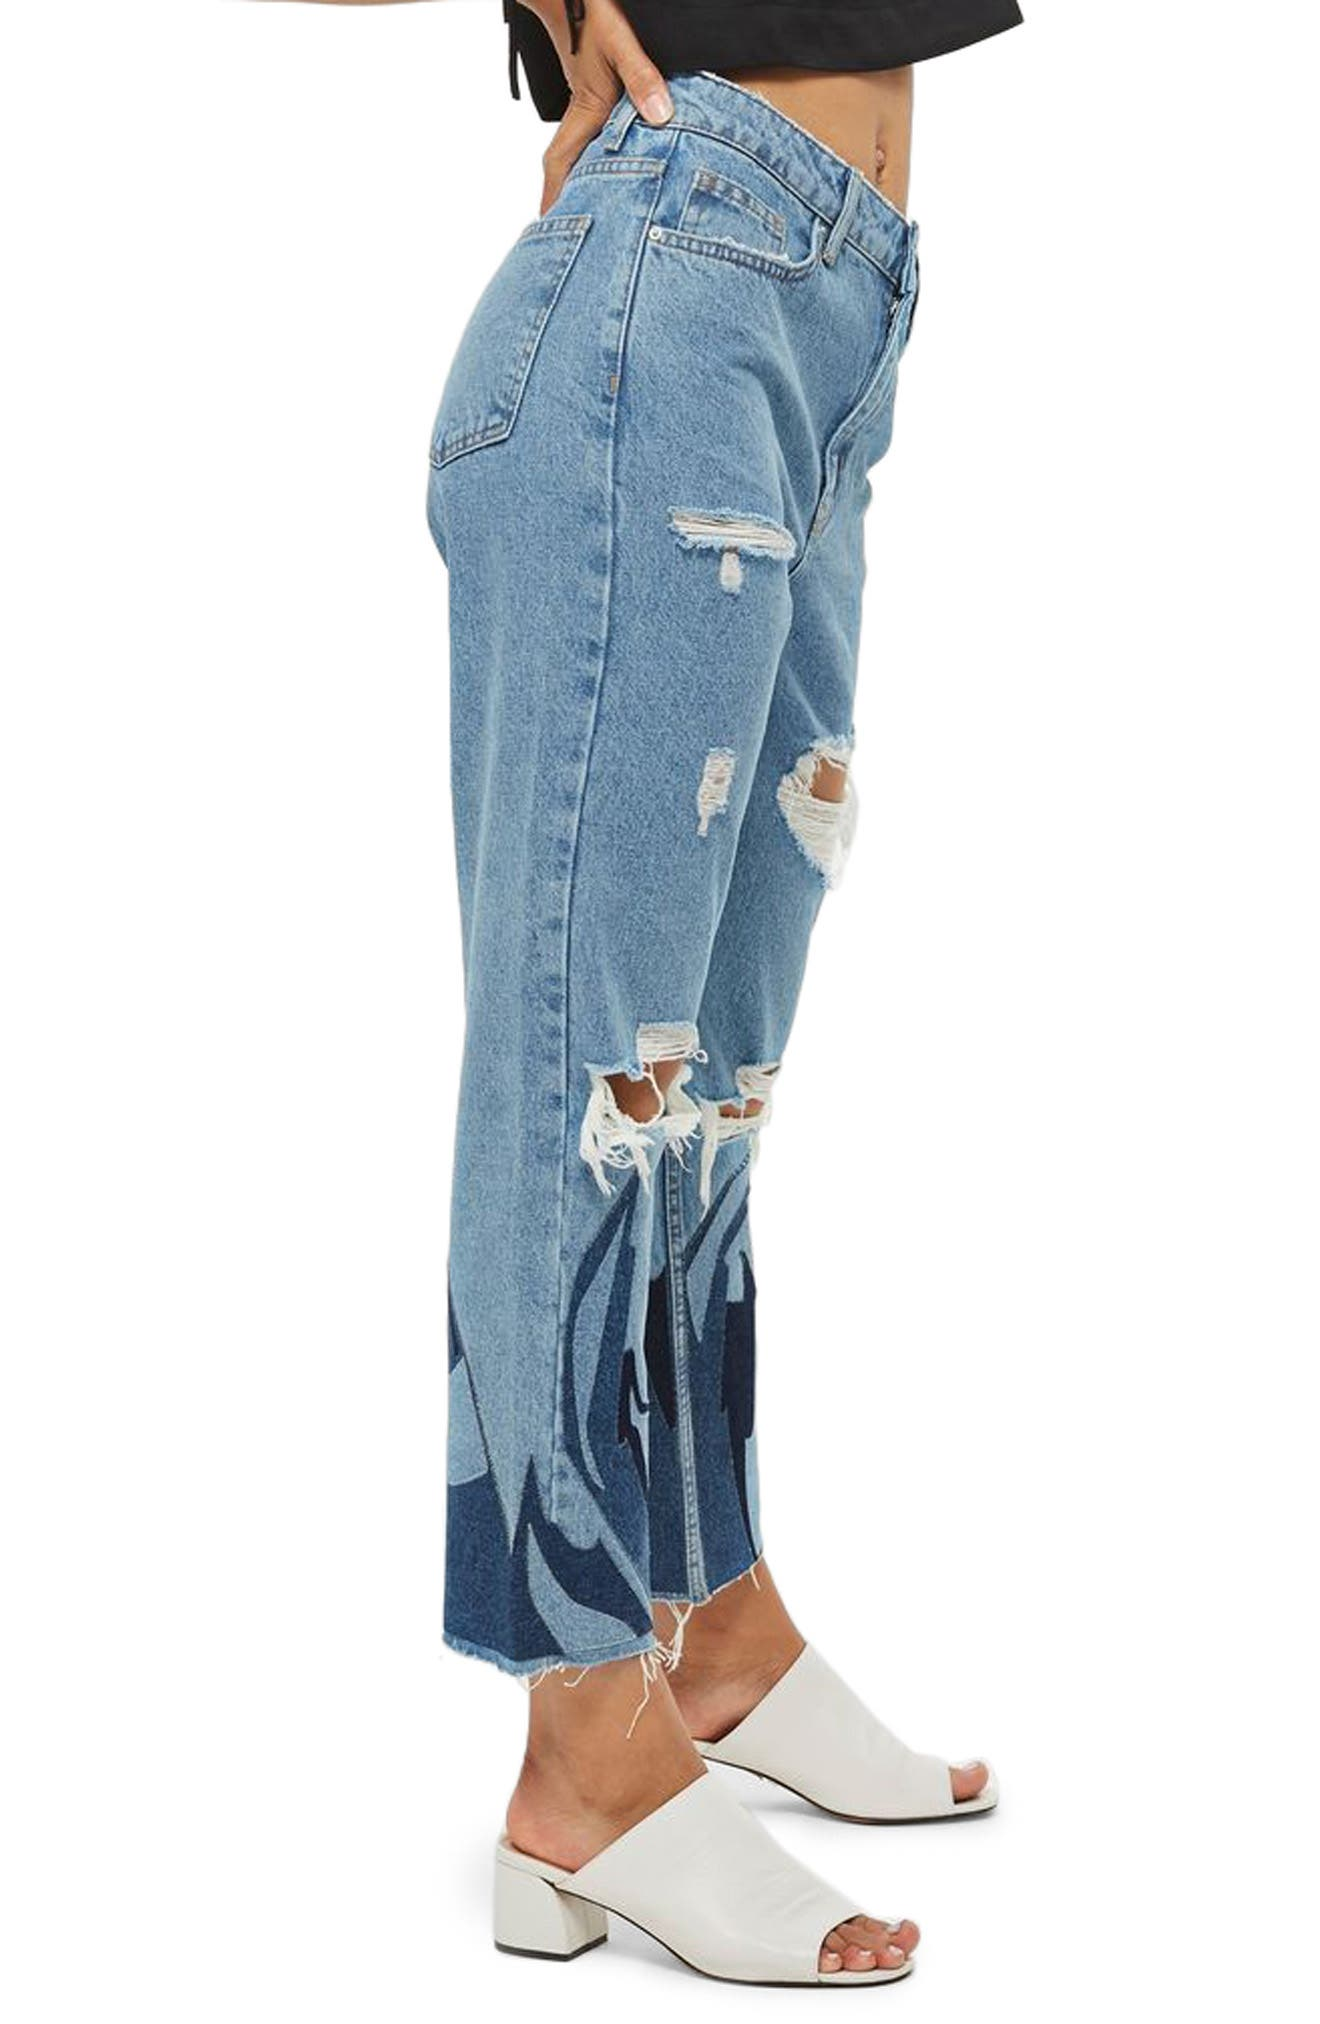 Topshop Flame Ripped Mom Jeans